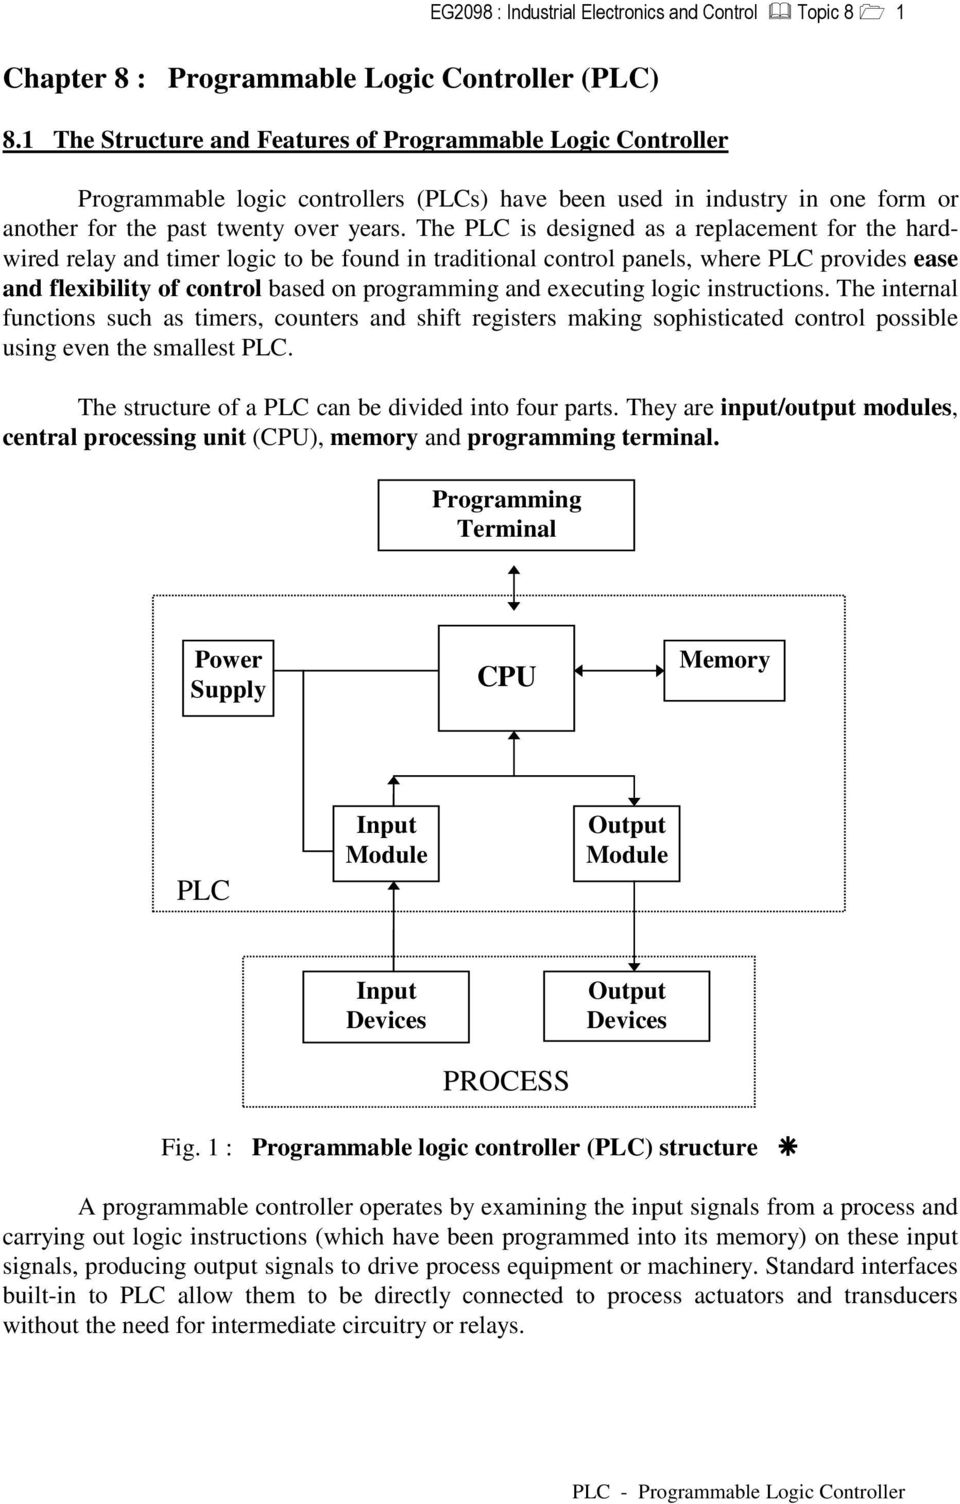 8 1 The Structure and Features of Programmable Logic